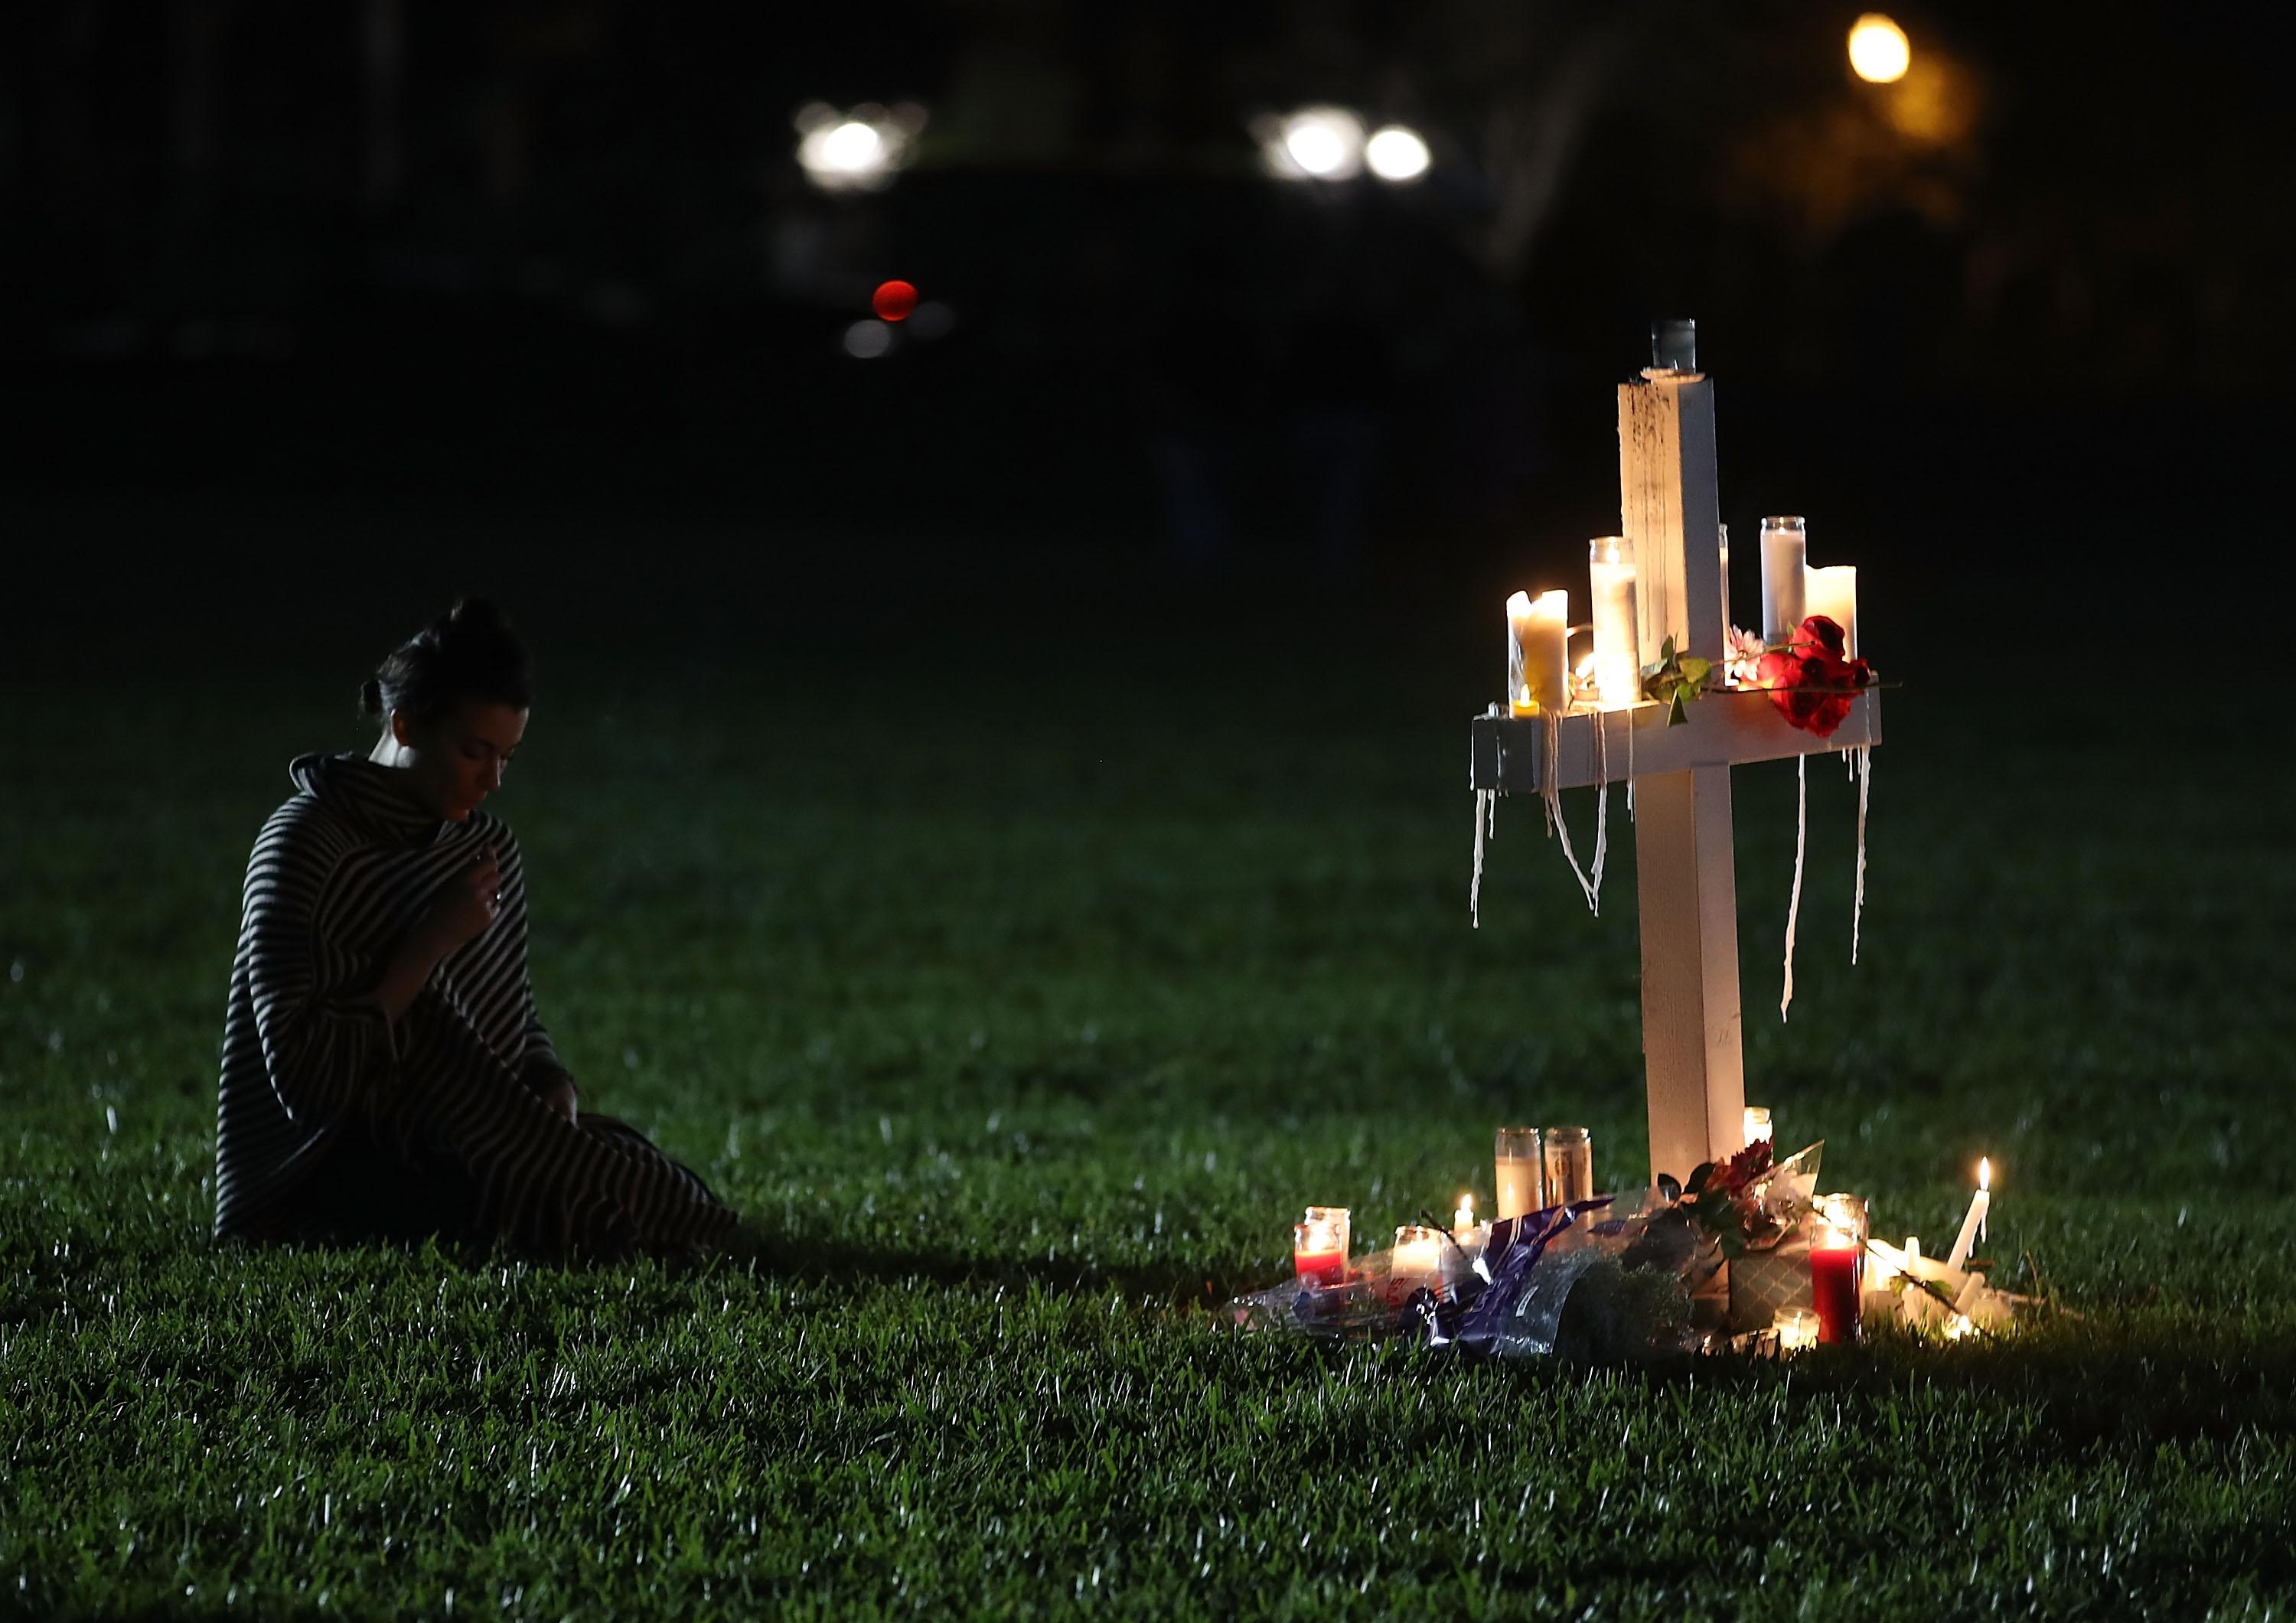 A former Douglas student during a vigil for victims of the mass shooting at Marjory Stoneman Douglas High School at Pine Trail Park, on February 15, 2018 in Parkland, Florida.